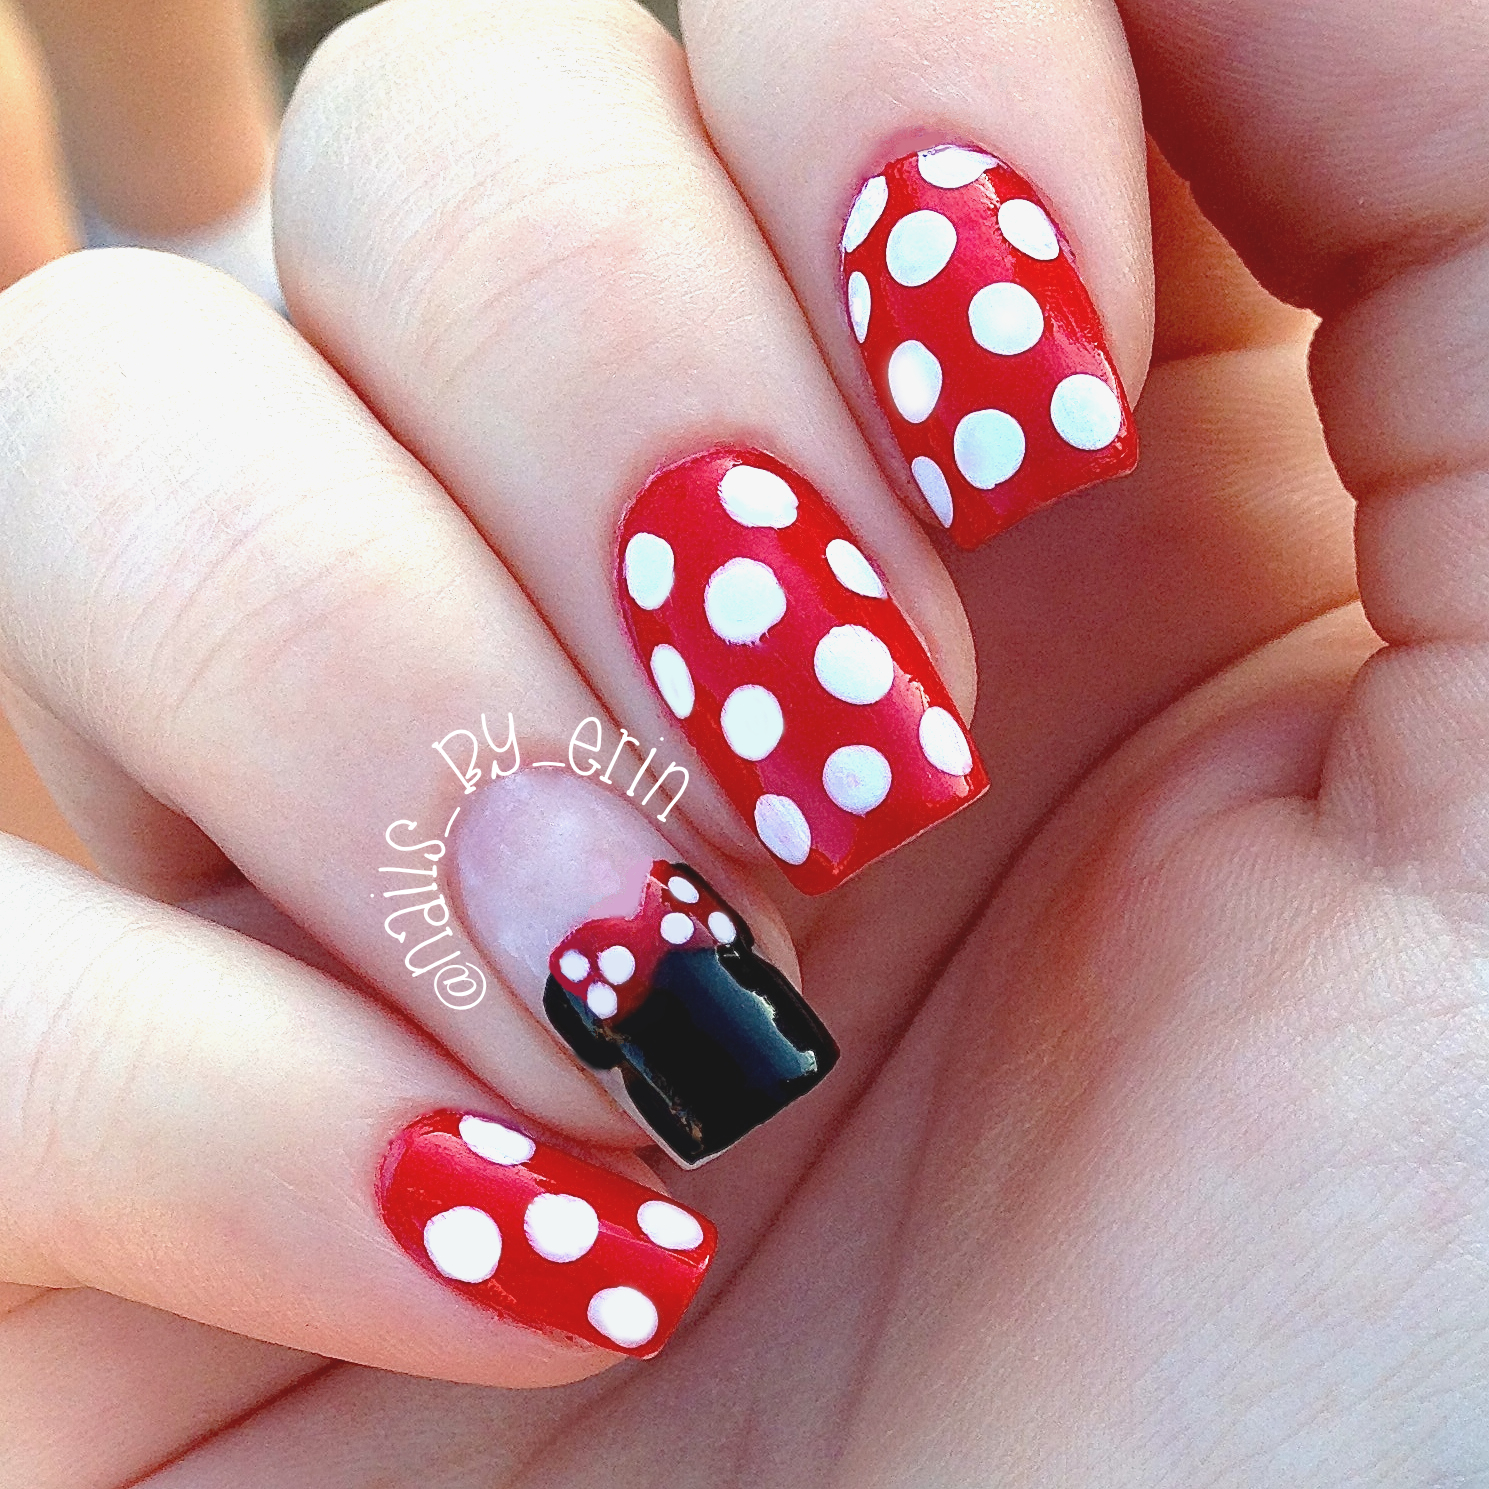 Minnie Mouse Nails - NailsByErin: Minnie Mouse Nails